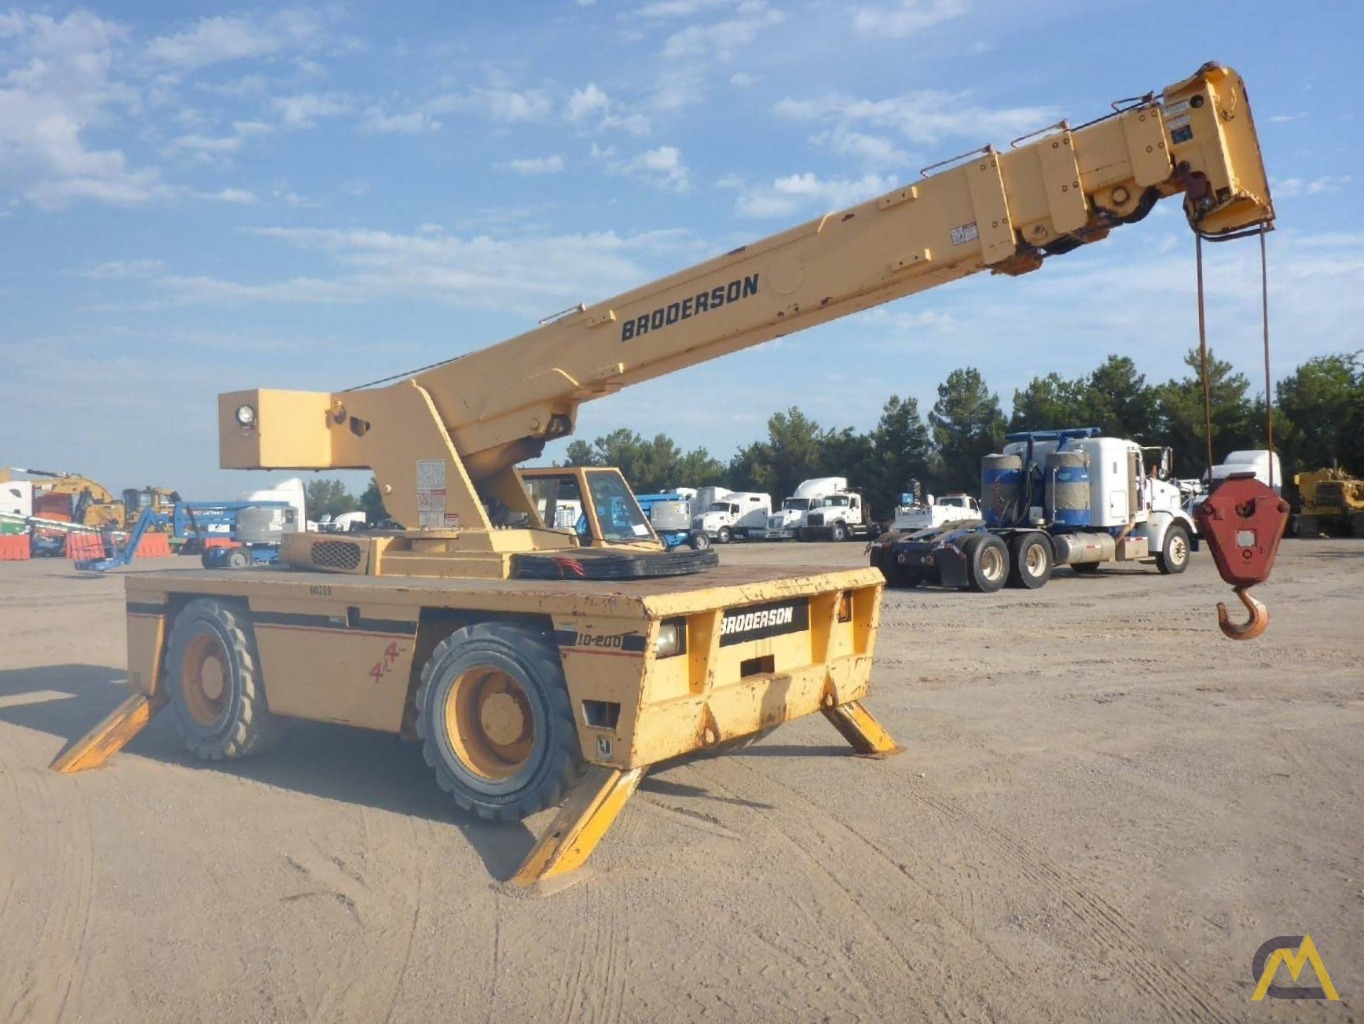 2008 Broderson IC-200-3F 15-Ton Carry Deck Crane 2